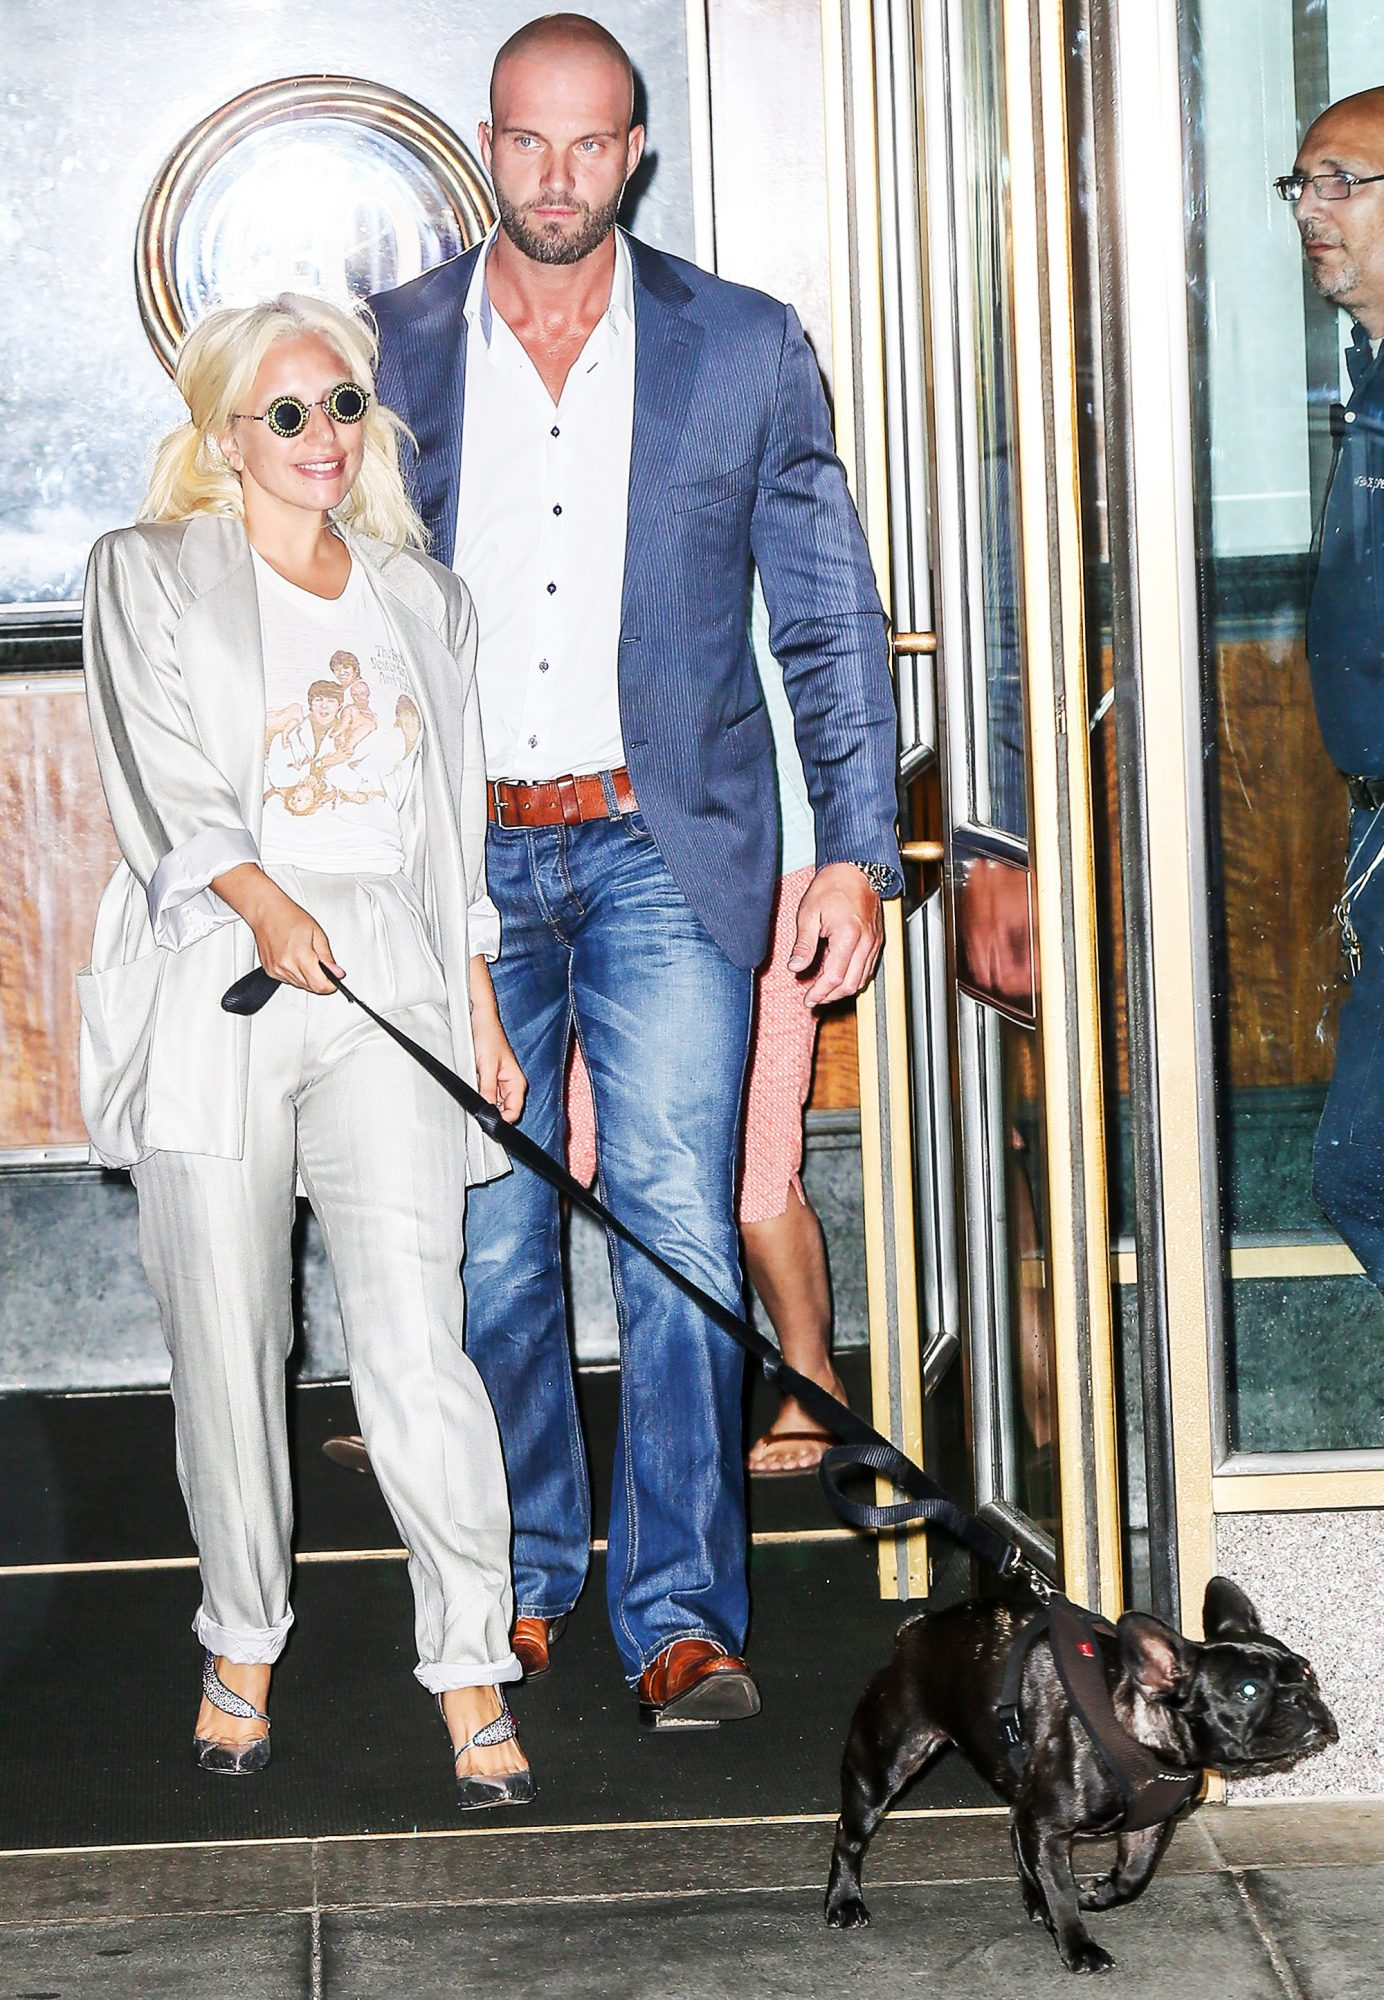 INF - Lady Gaga Leaves Her Apartment With Her Dog En Route To Radio City Music Hall